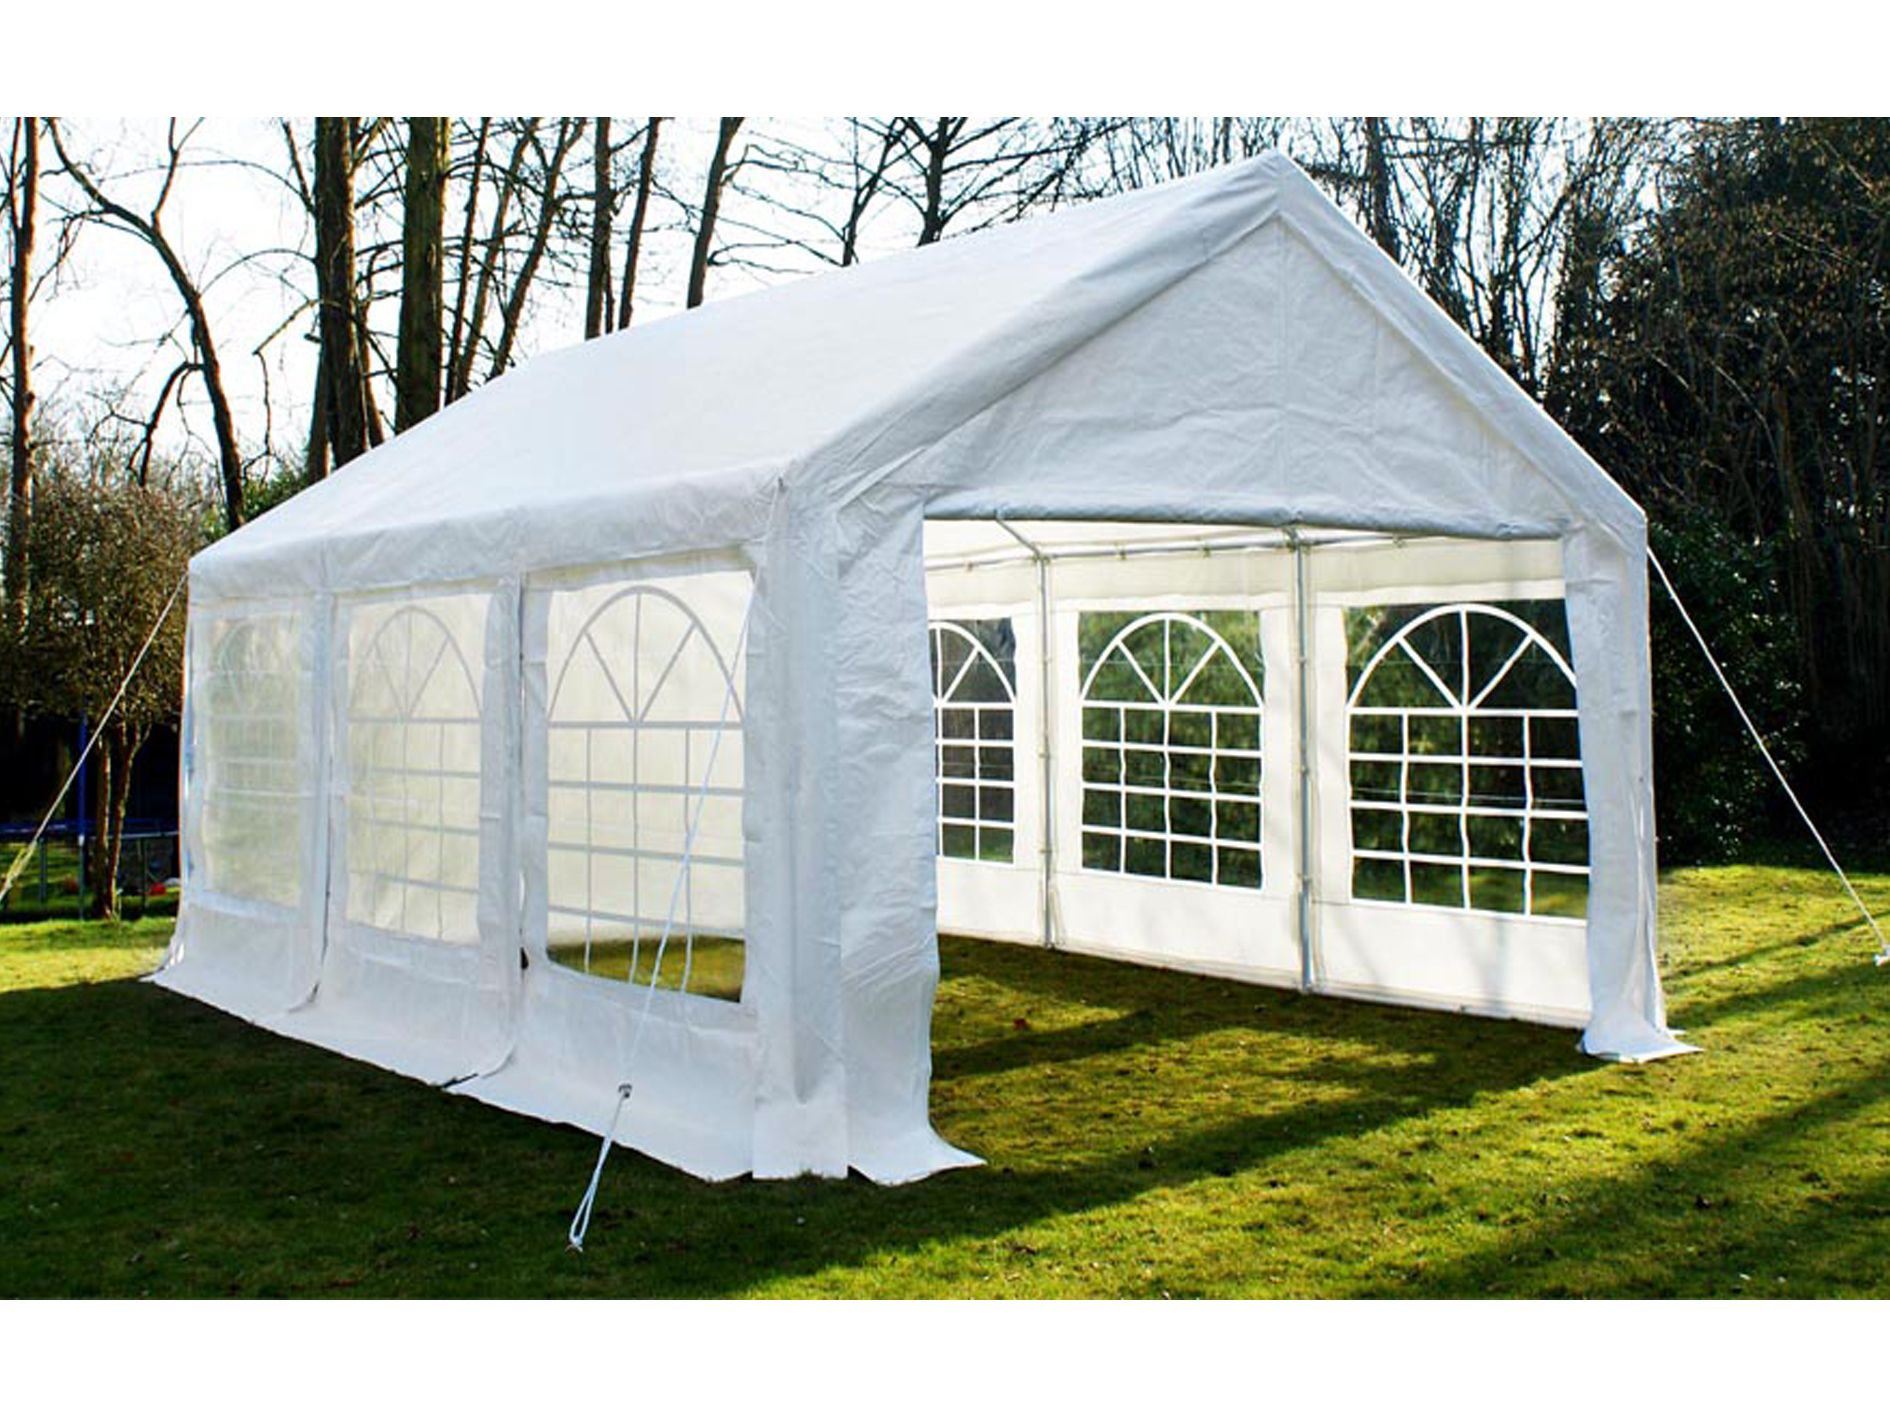 Quality Affordable Frame Tents For Sale Home In 1 Canopy Tent Party Tent Outdoor